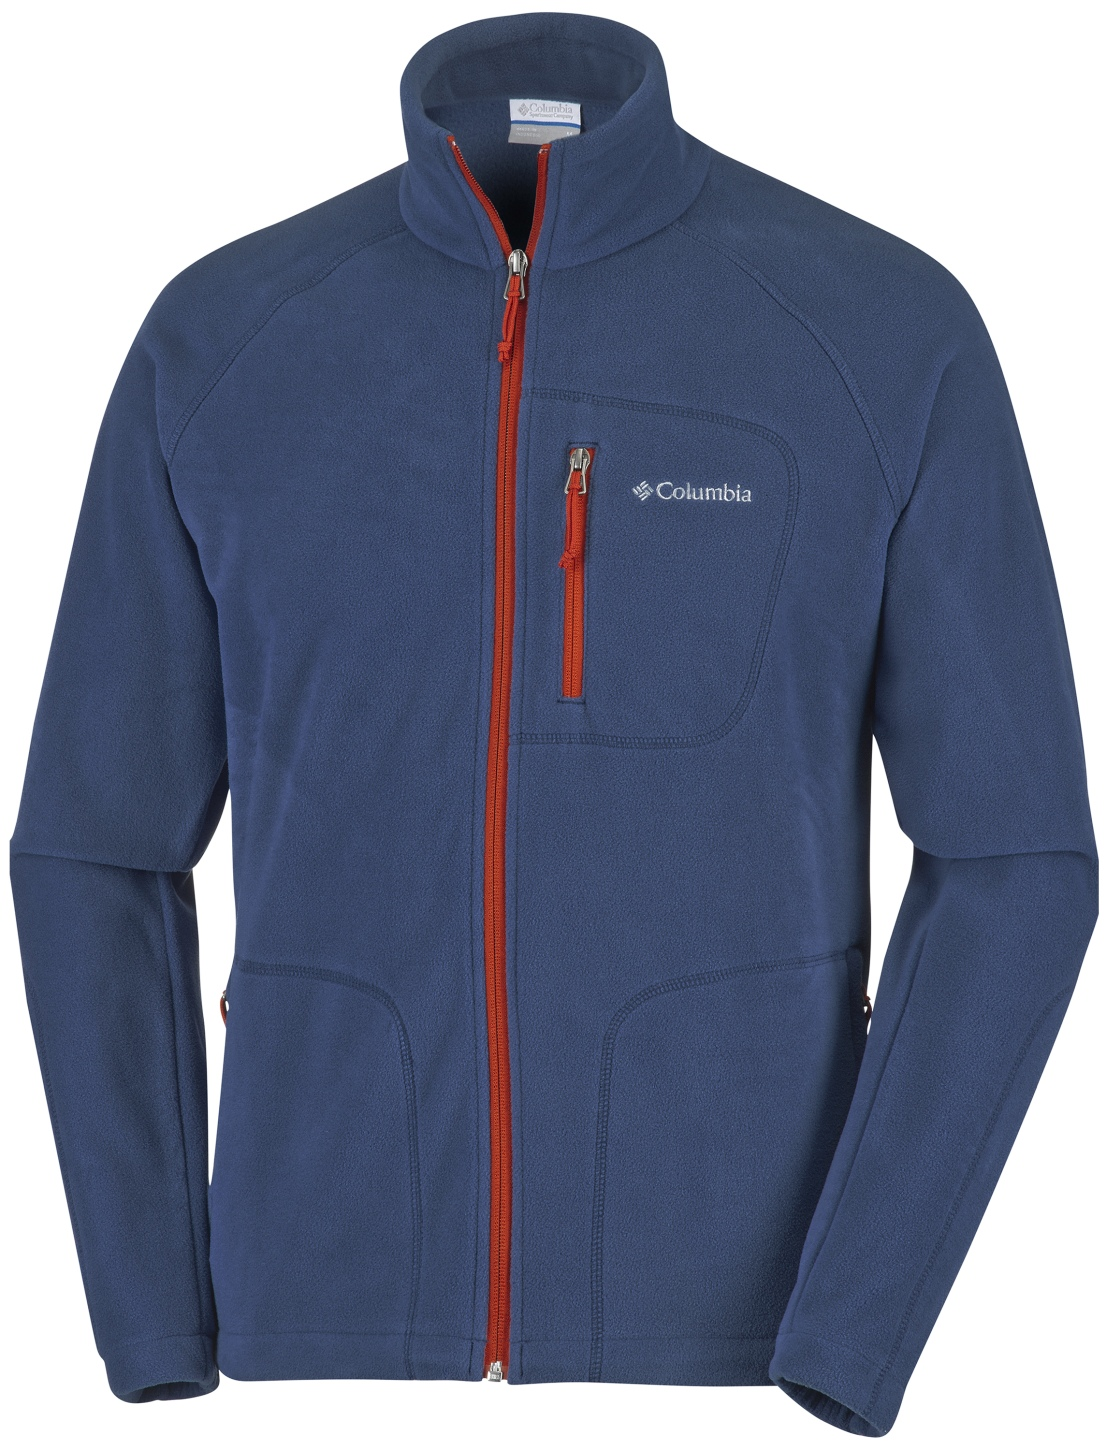 Columbia Men's Fast Trek II Full Zip Fleece Collegiate Navy, Rust Red-30